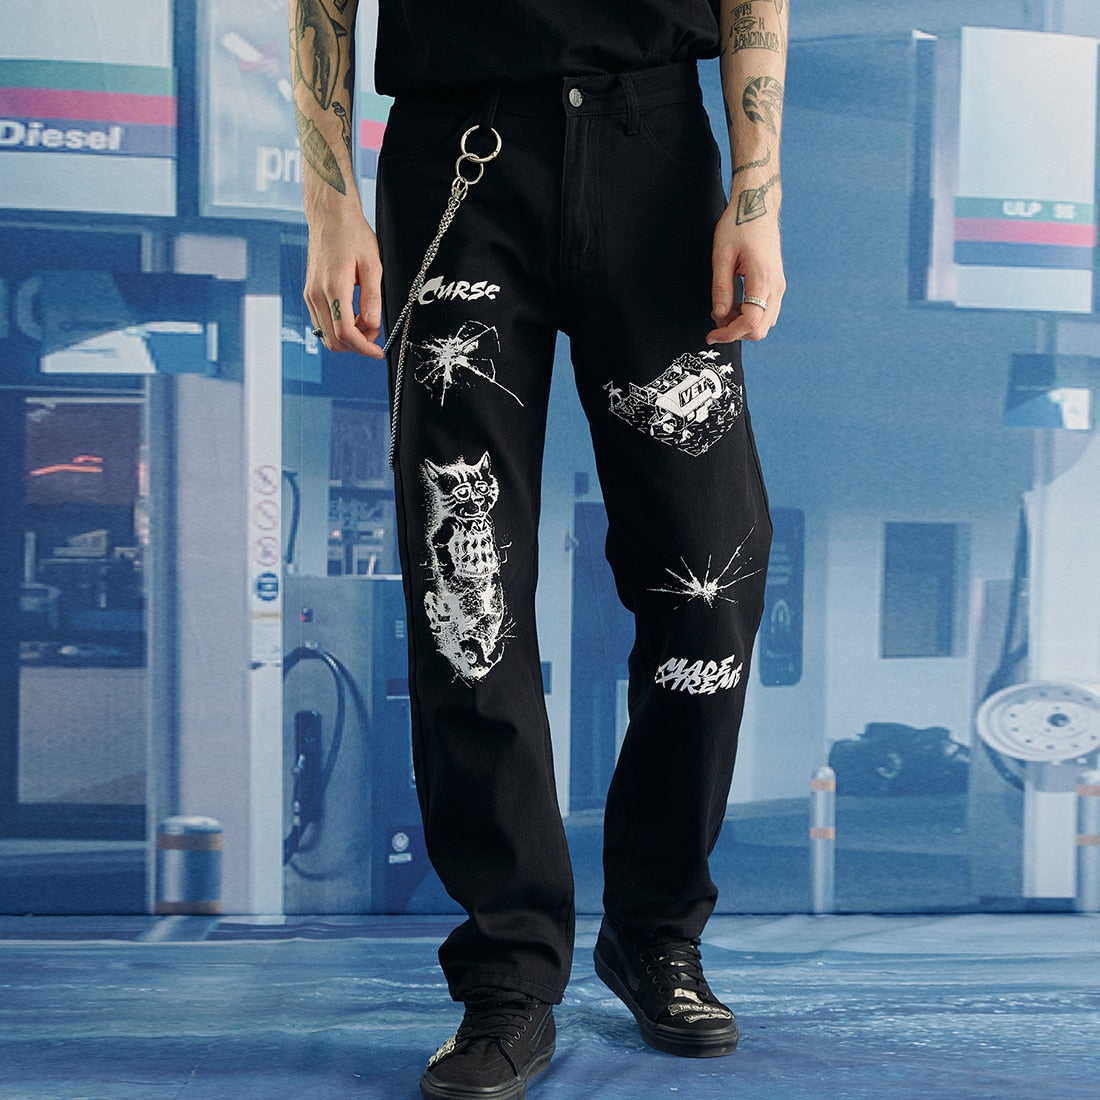 Extreme Aesthetic Customized Jeans Clout Collection Clout Collection You may think, there's no specific aesthetic it's just aesthetic. extreme aesthetic customized jeans